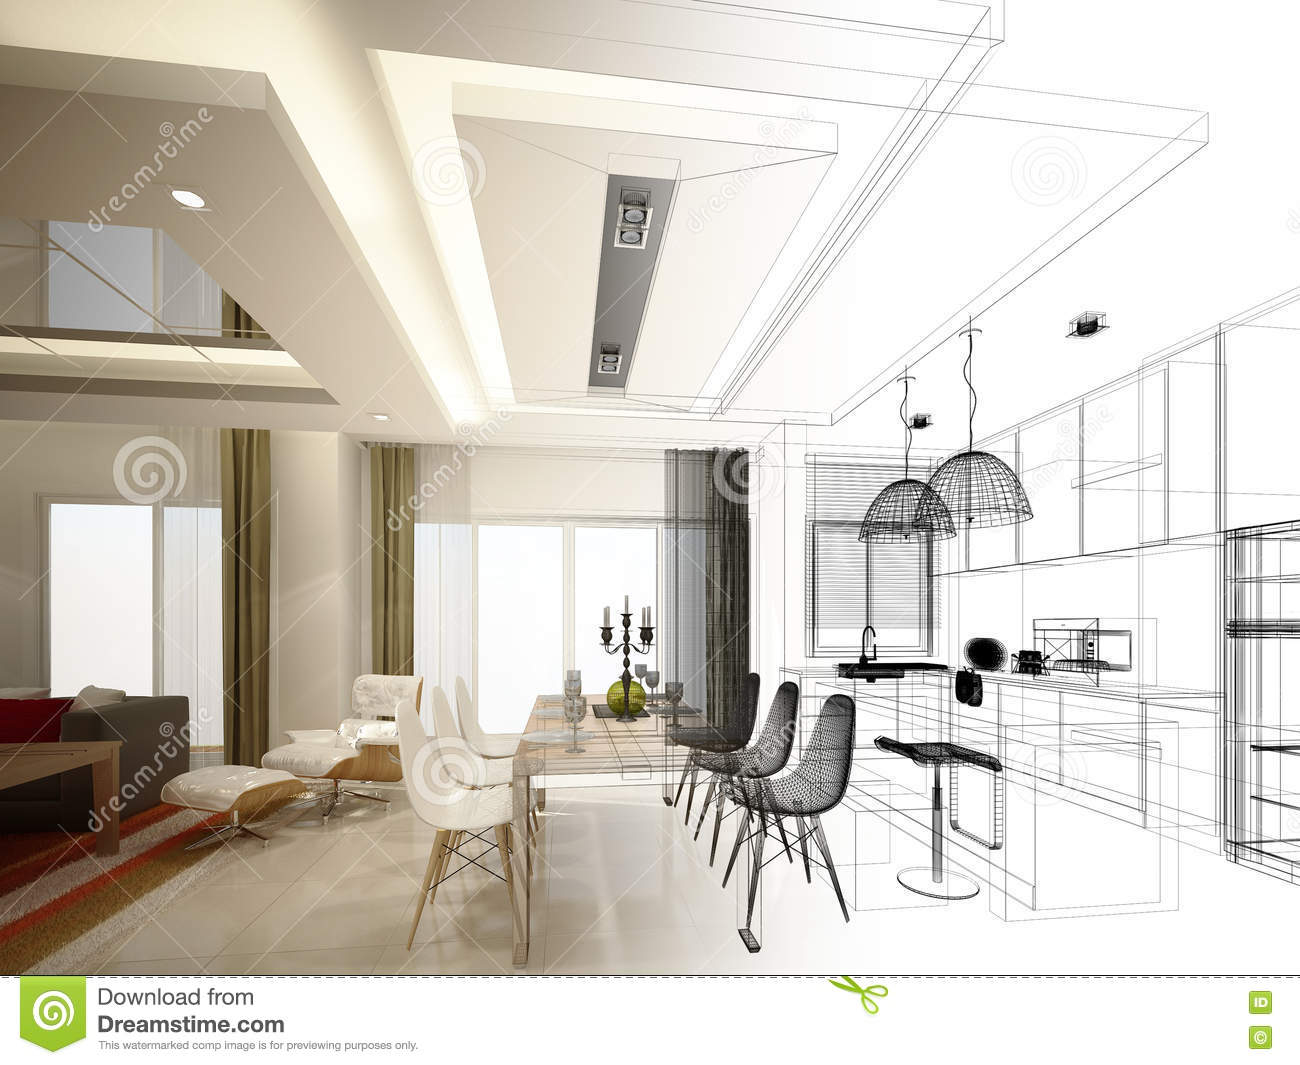 Abstract Sketch Design Of Interior Dining And Kitchen Room